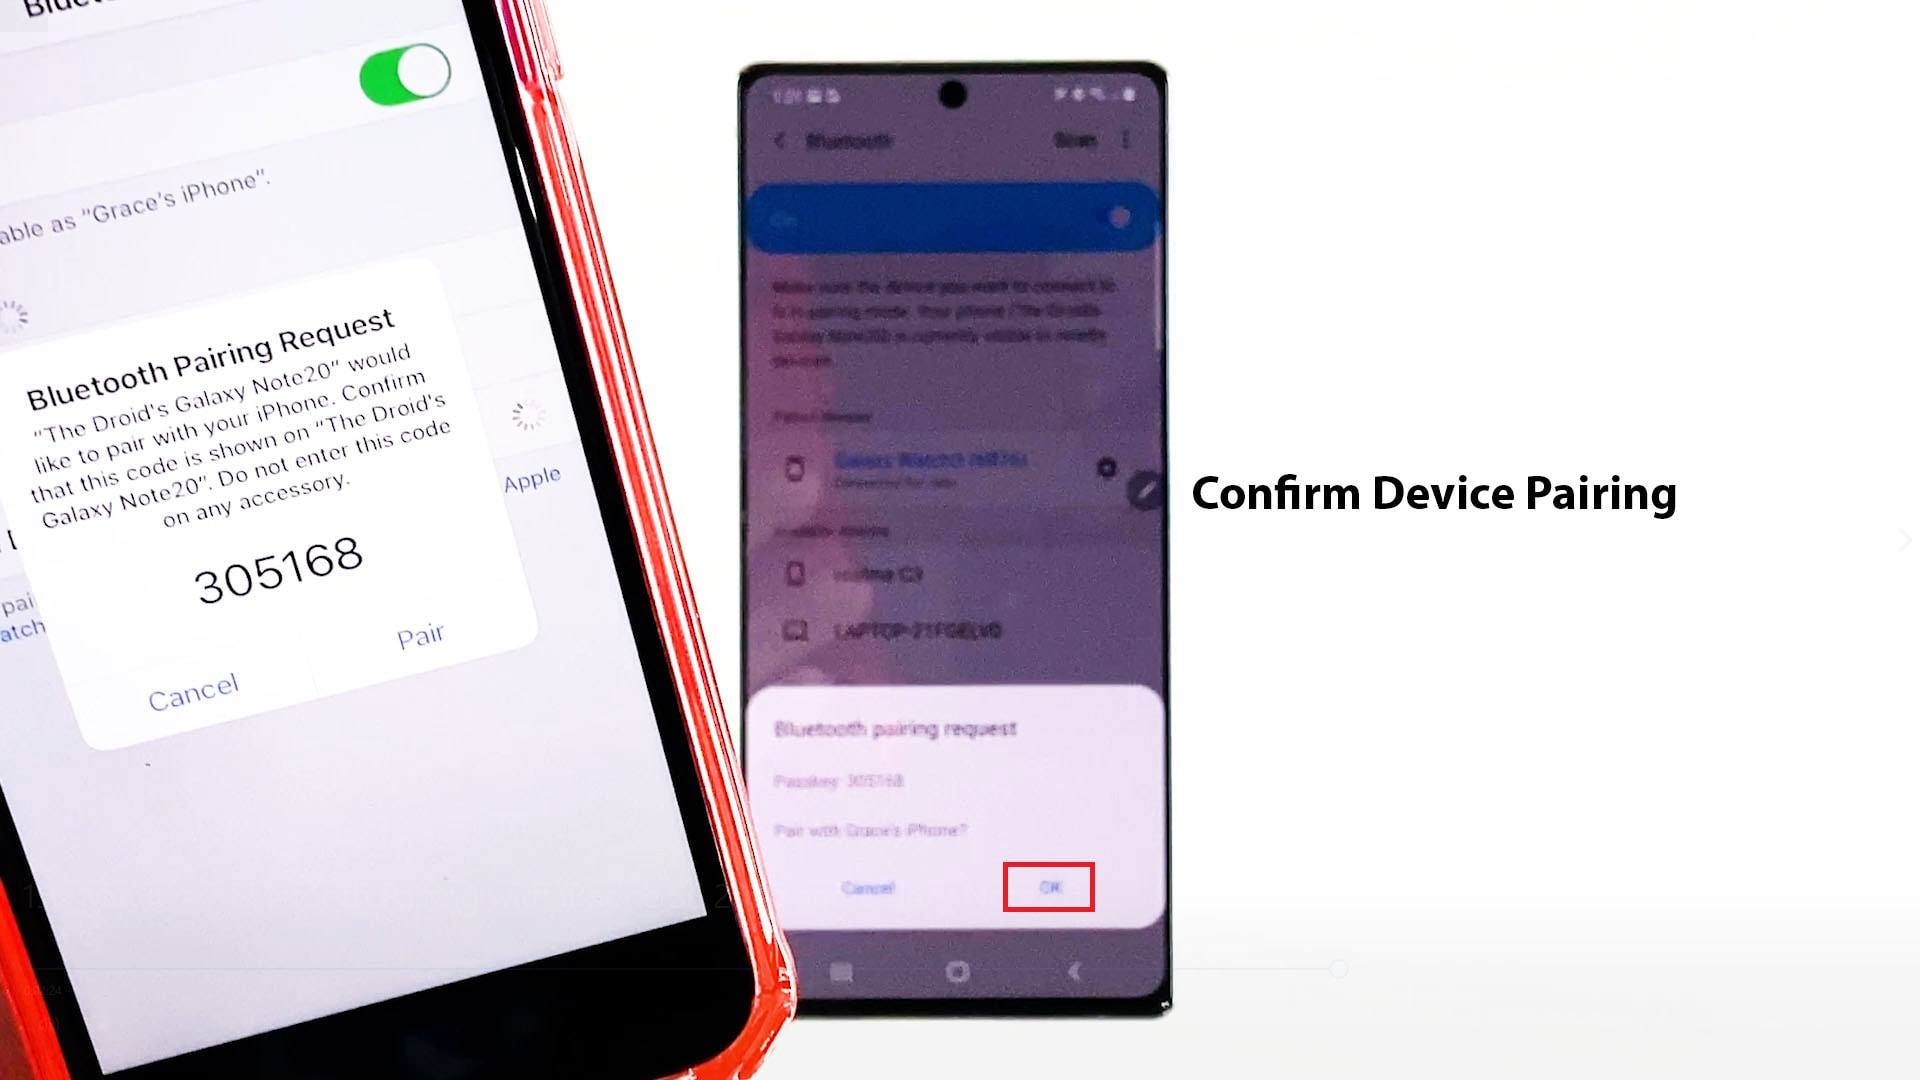 bluetooth pairing galaxy note 20 and iphone-confirm